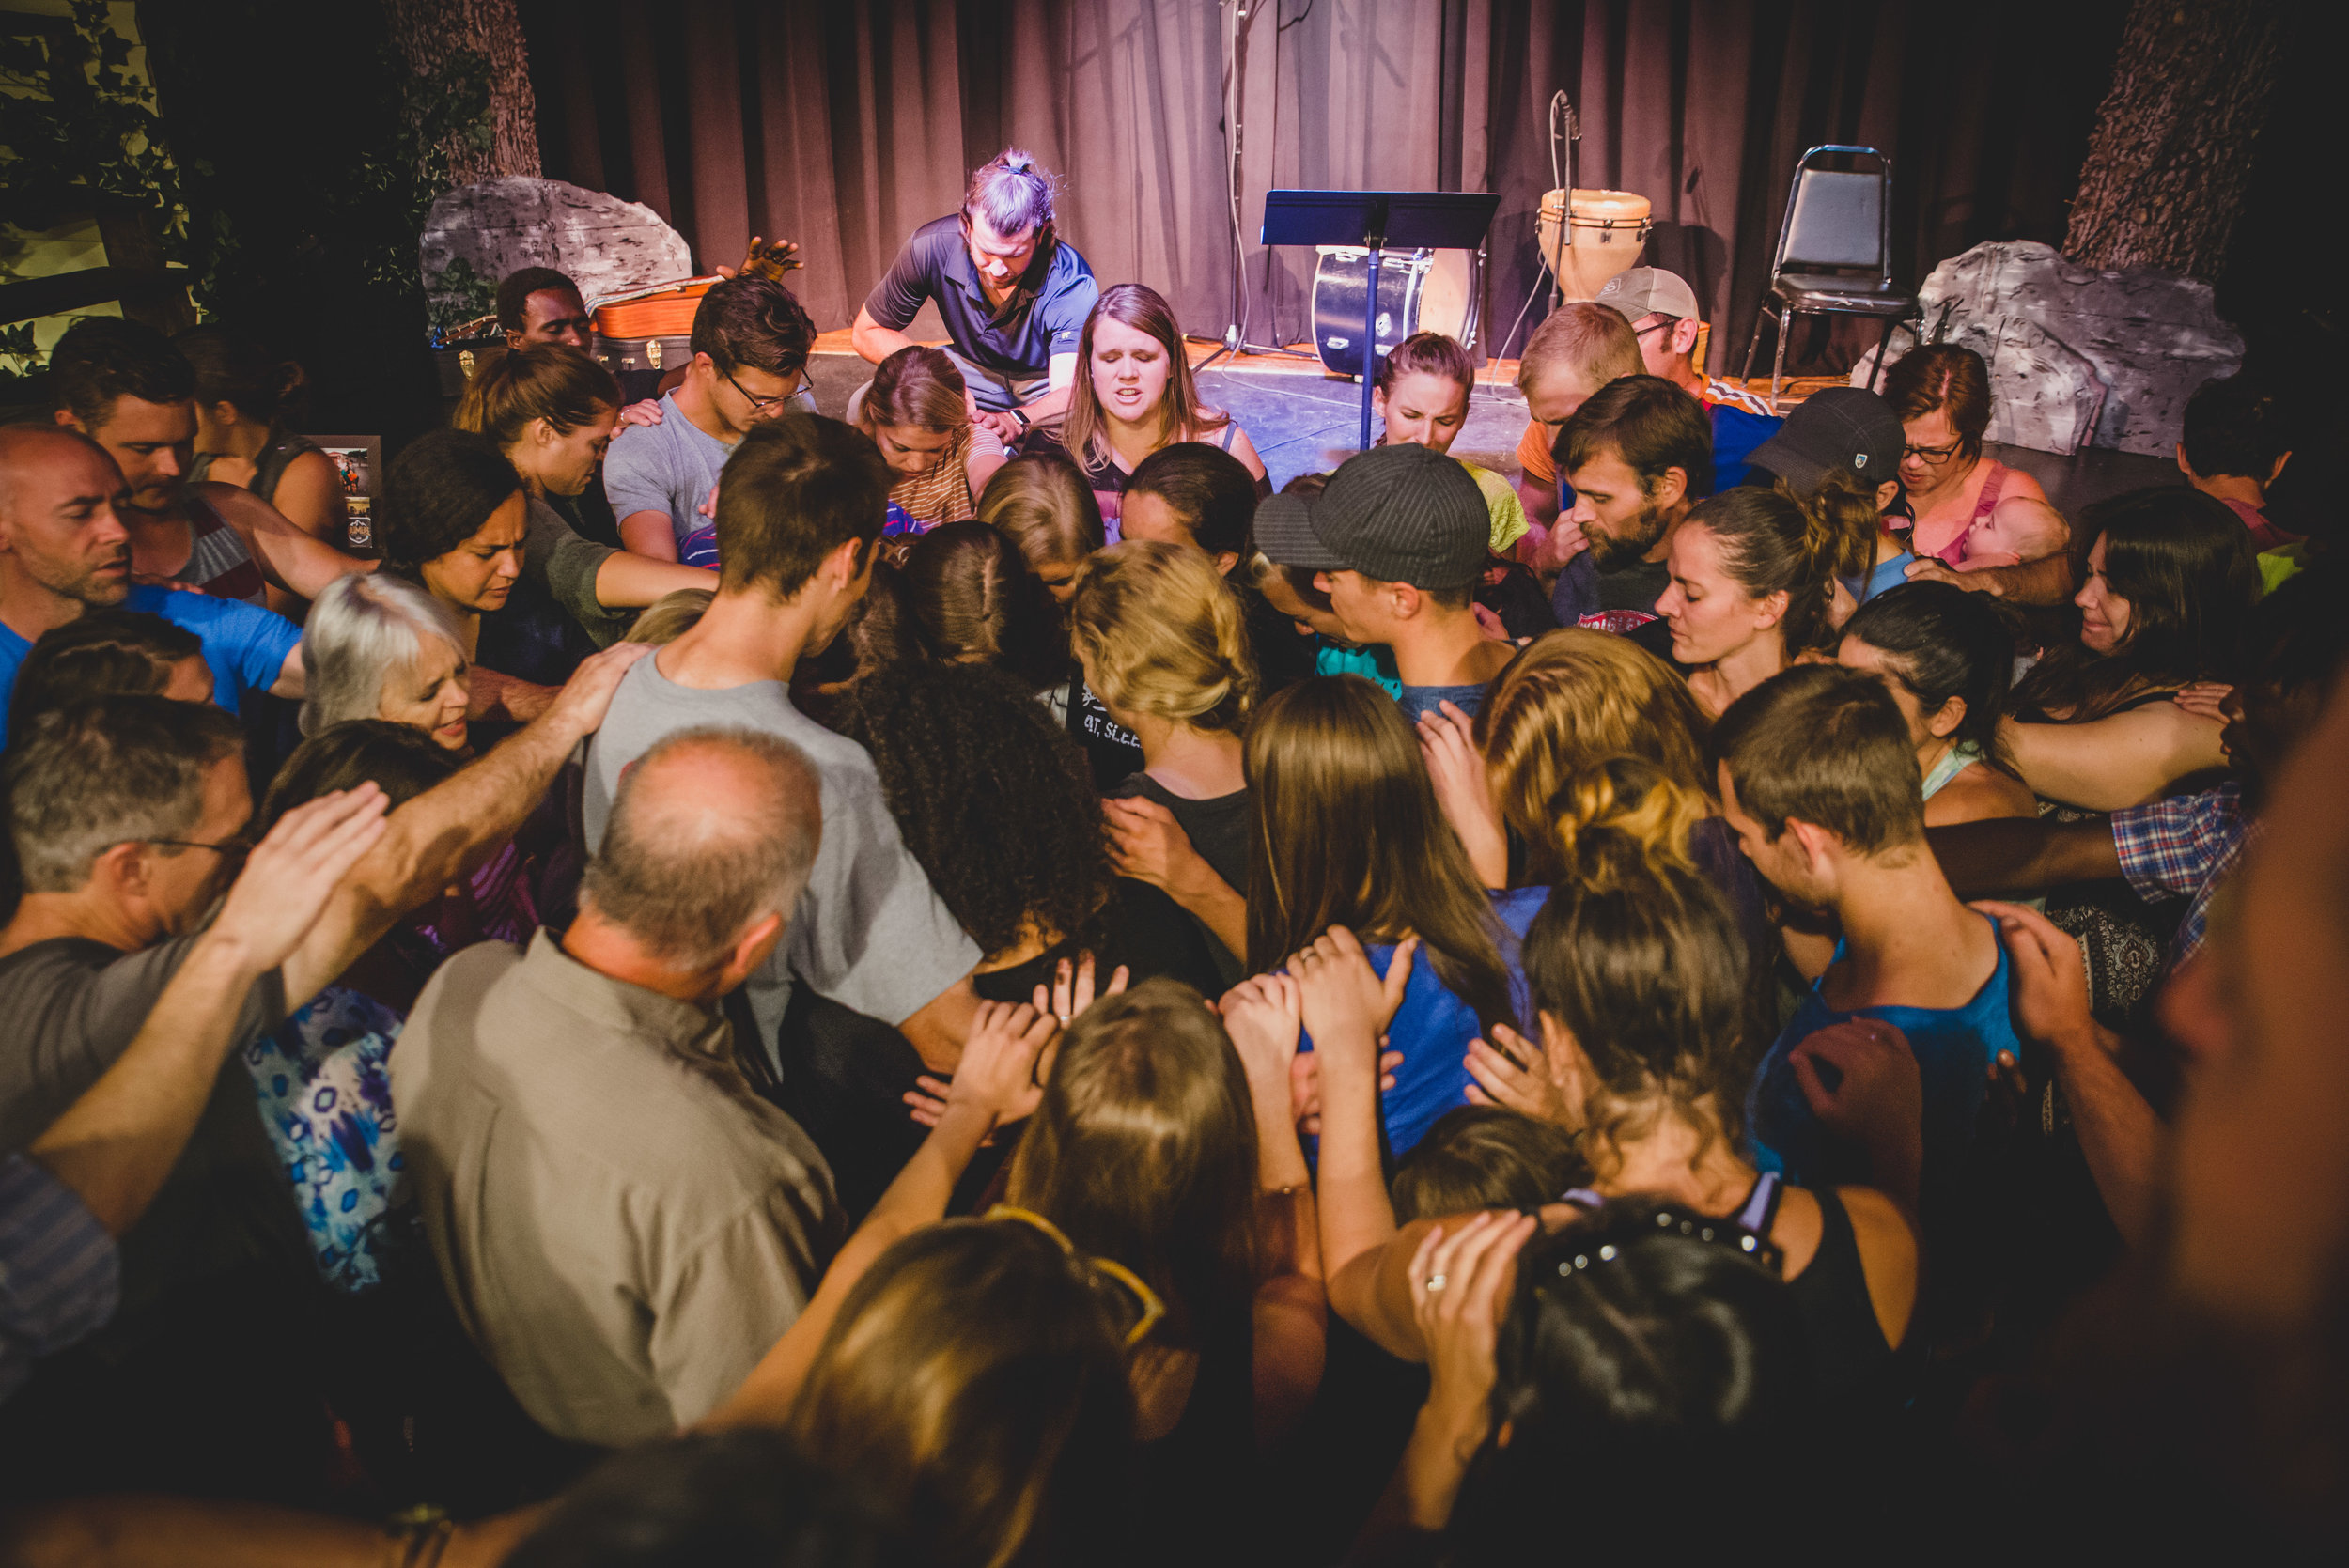 While the interns receive some of their first lessons in choosing to live by the spirit and not the flesh, they are surrounded by a collaborative team effort that requires a lot of spirit. Putting on summer internship is no small feat, many people are involved in equipping interns for their tasks, and investing into their person at the same time.